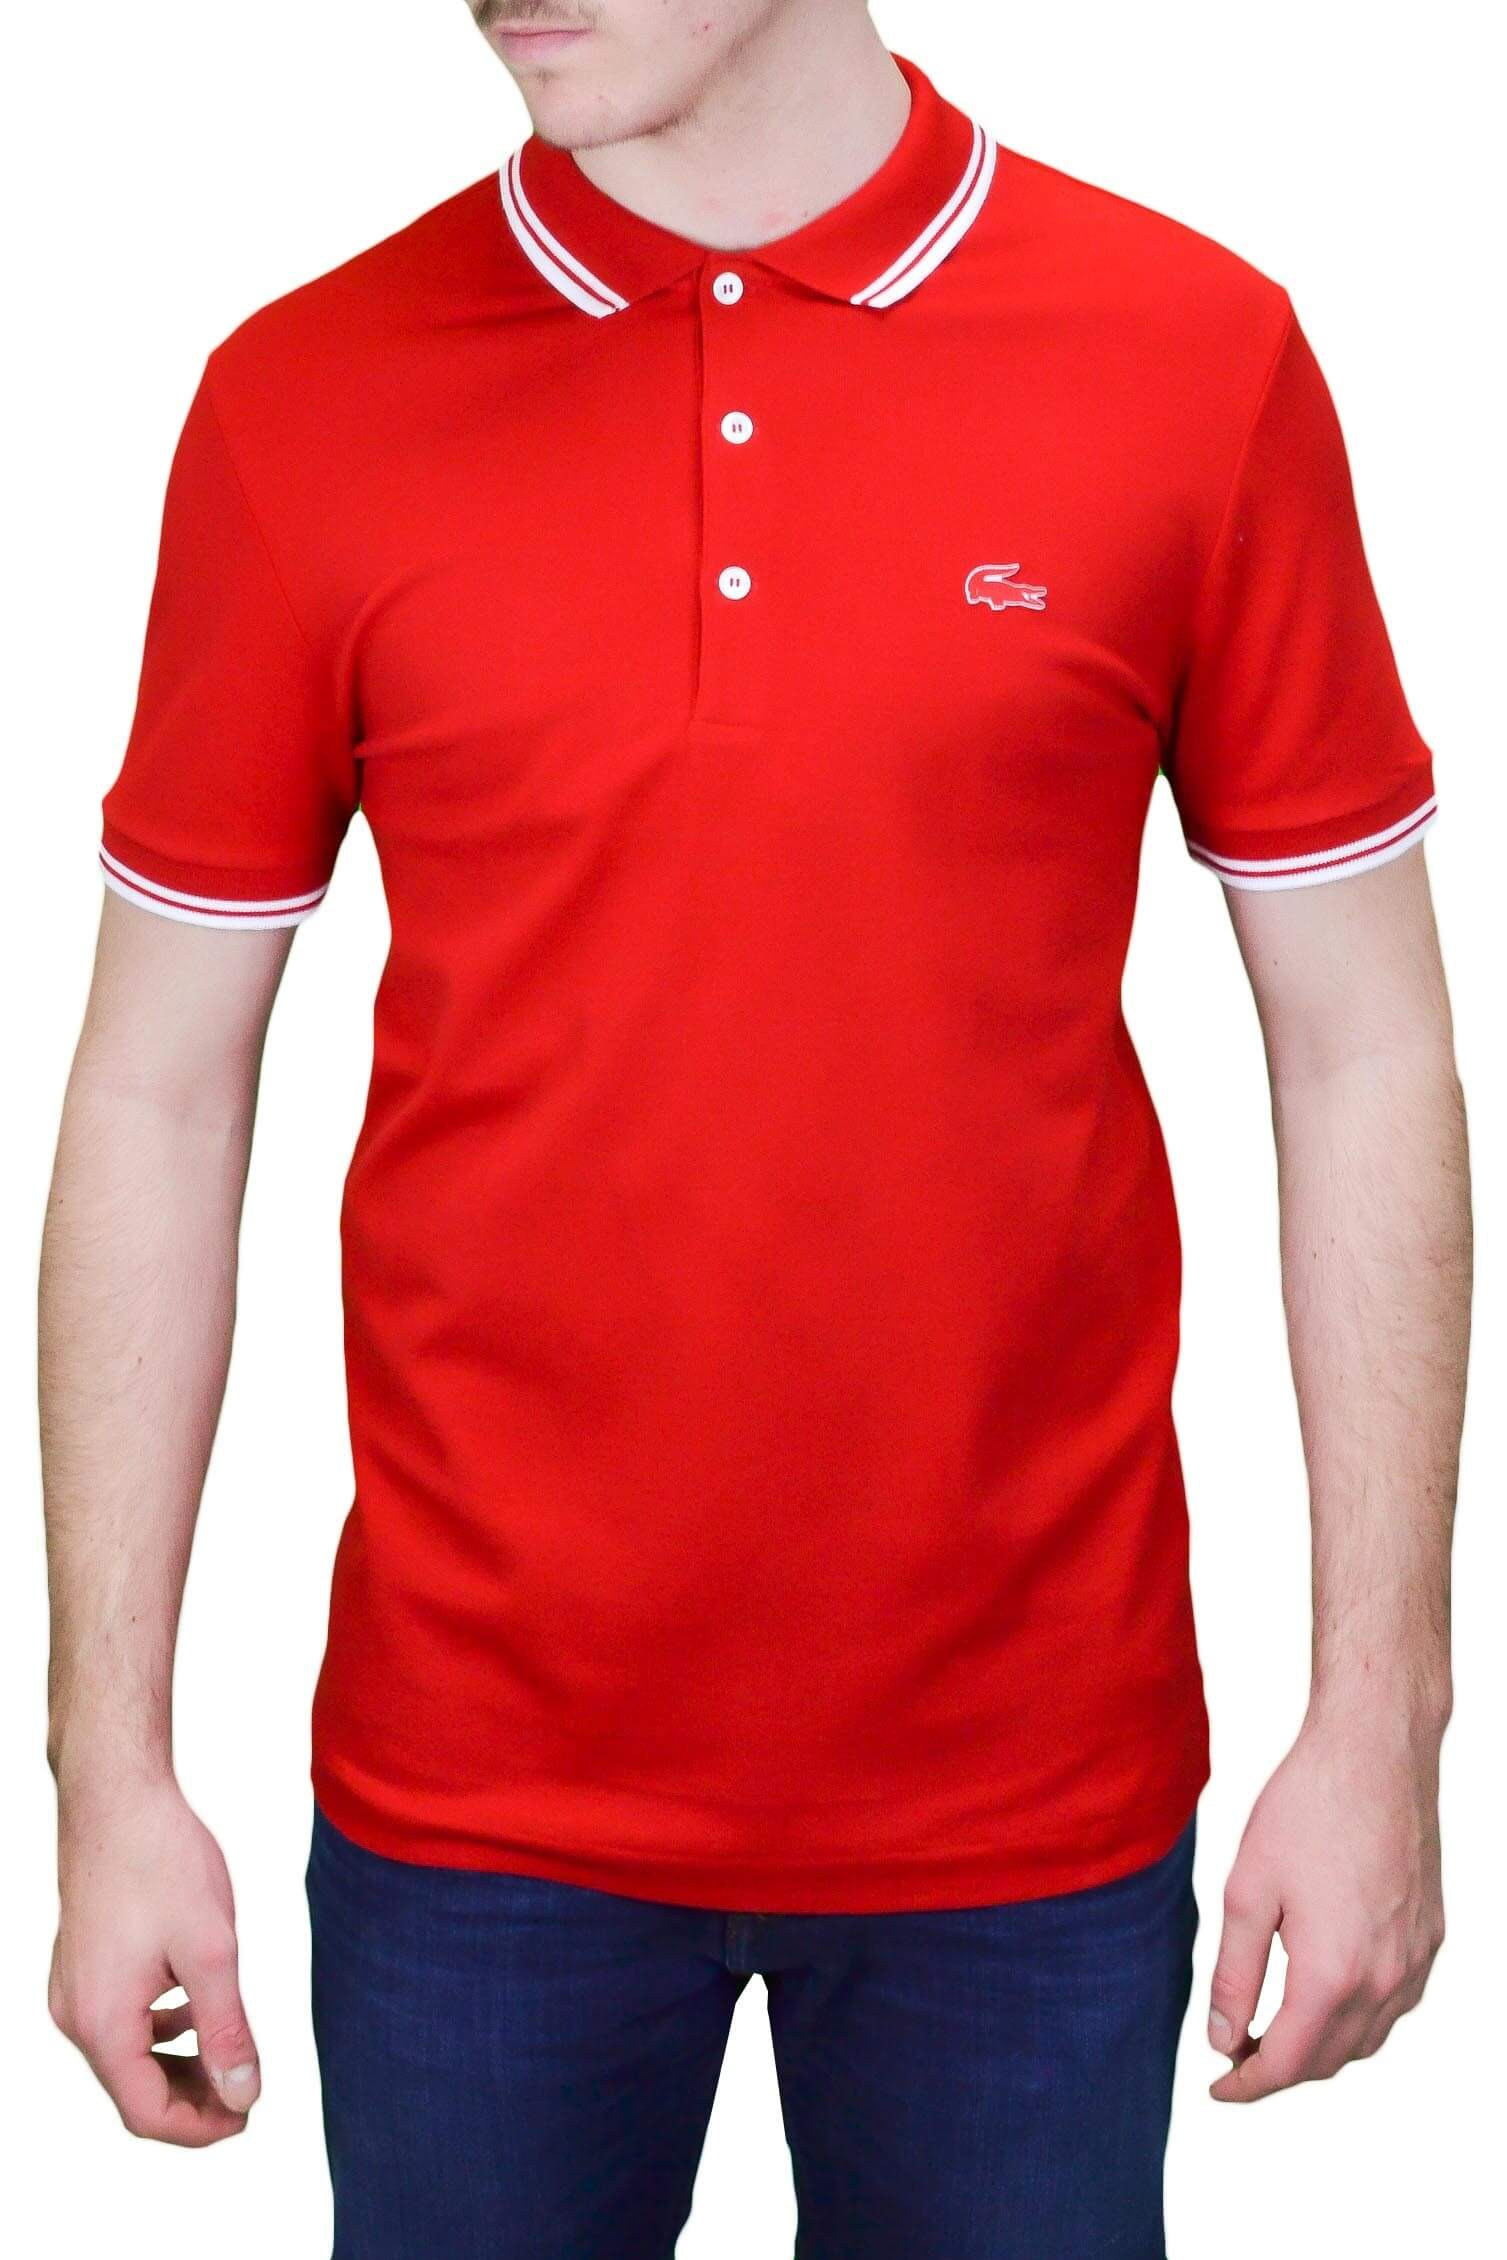 t shirt lacoste homme rouge product lacoste t shirt homme rouge red small taille fabricant polo laco. Black Bedroom Furniture Sets. Home Design Ideas